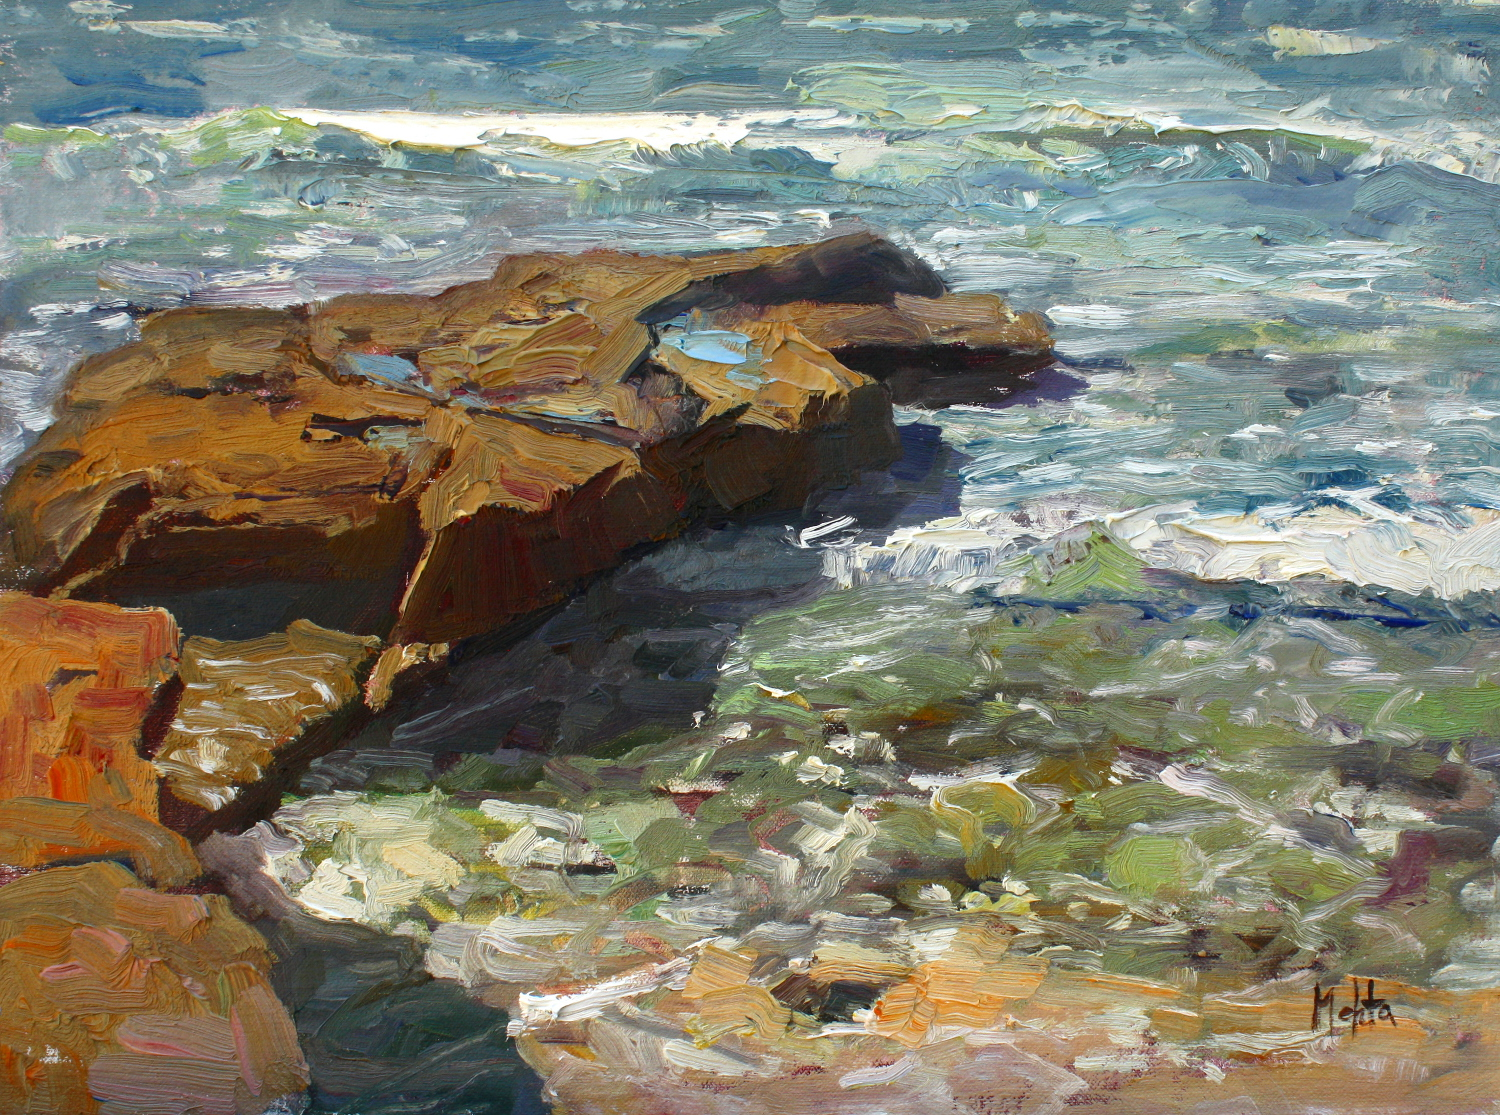 Rocks and Reef 12x16